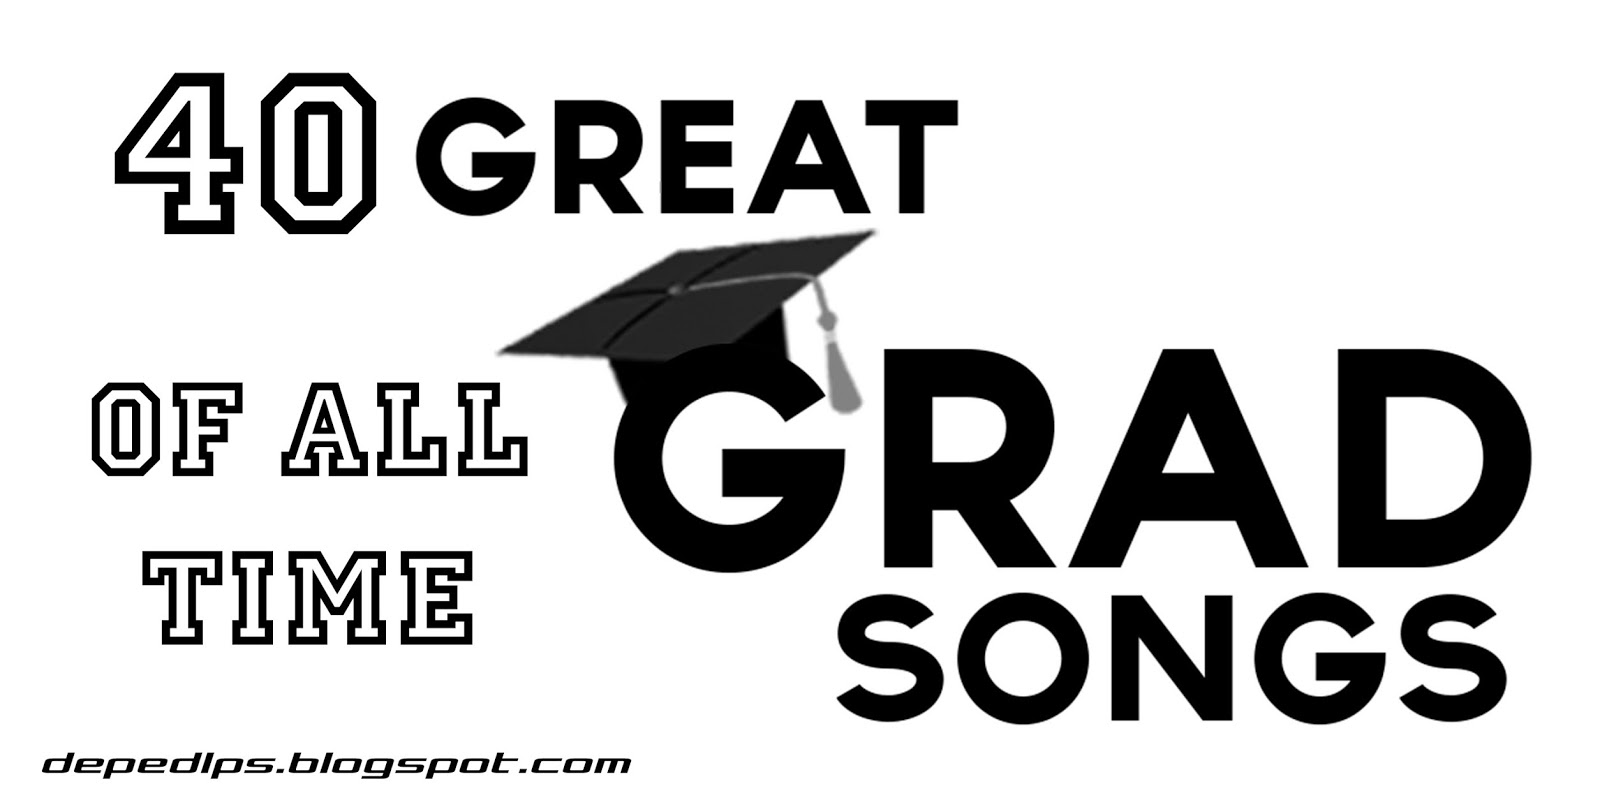 Graduation Song Ideas: Top 40 Graduation Songs Of All Time